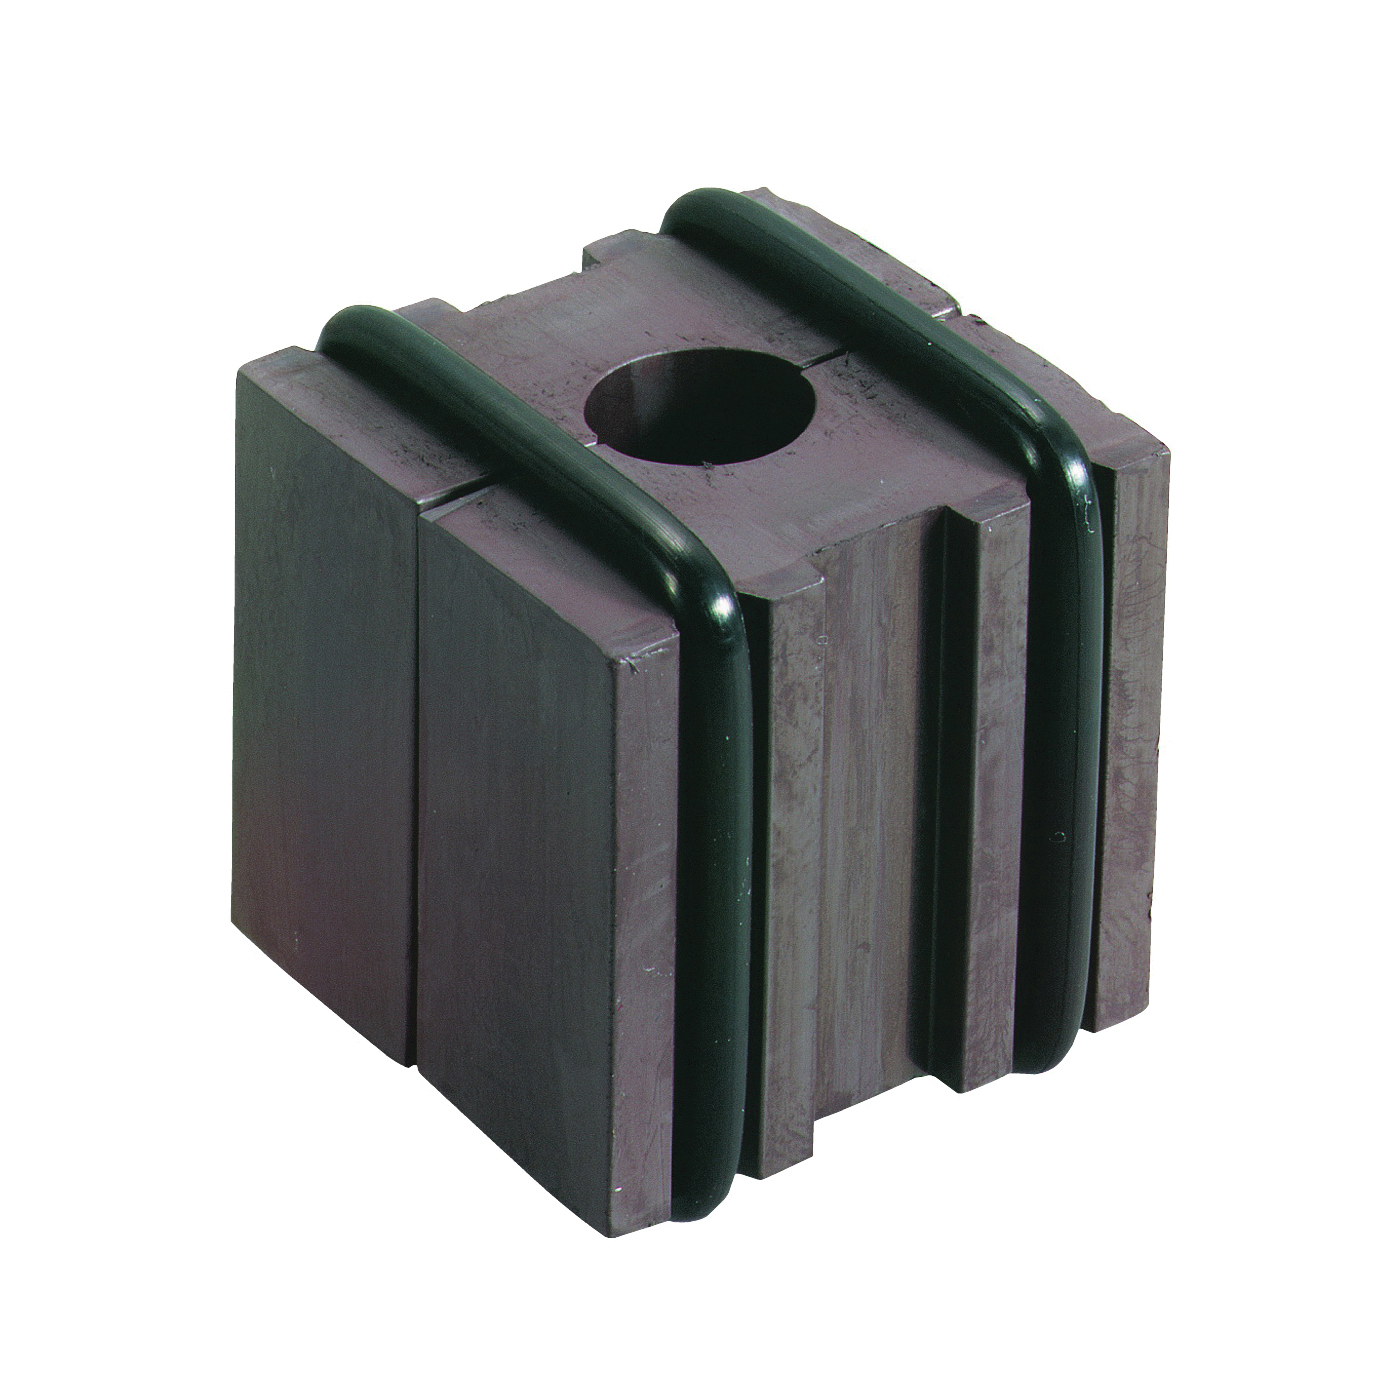 Picture of GENERAL 360 Magnetizer/Demagnetizer, 1-3/4 in L, 1 in W, 1 in H